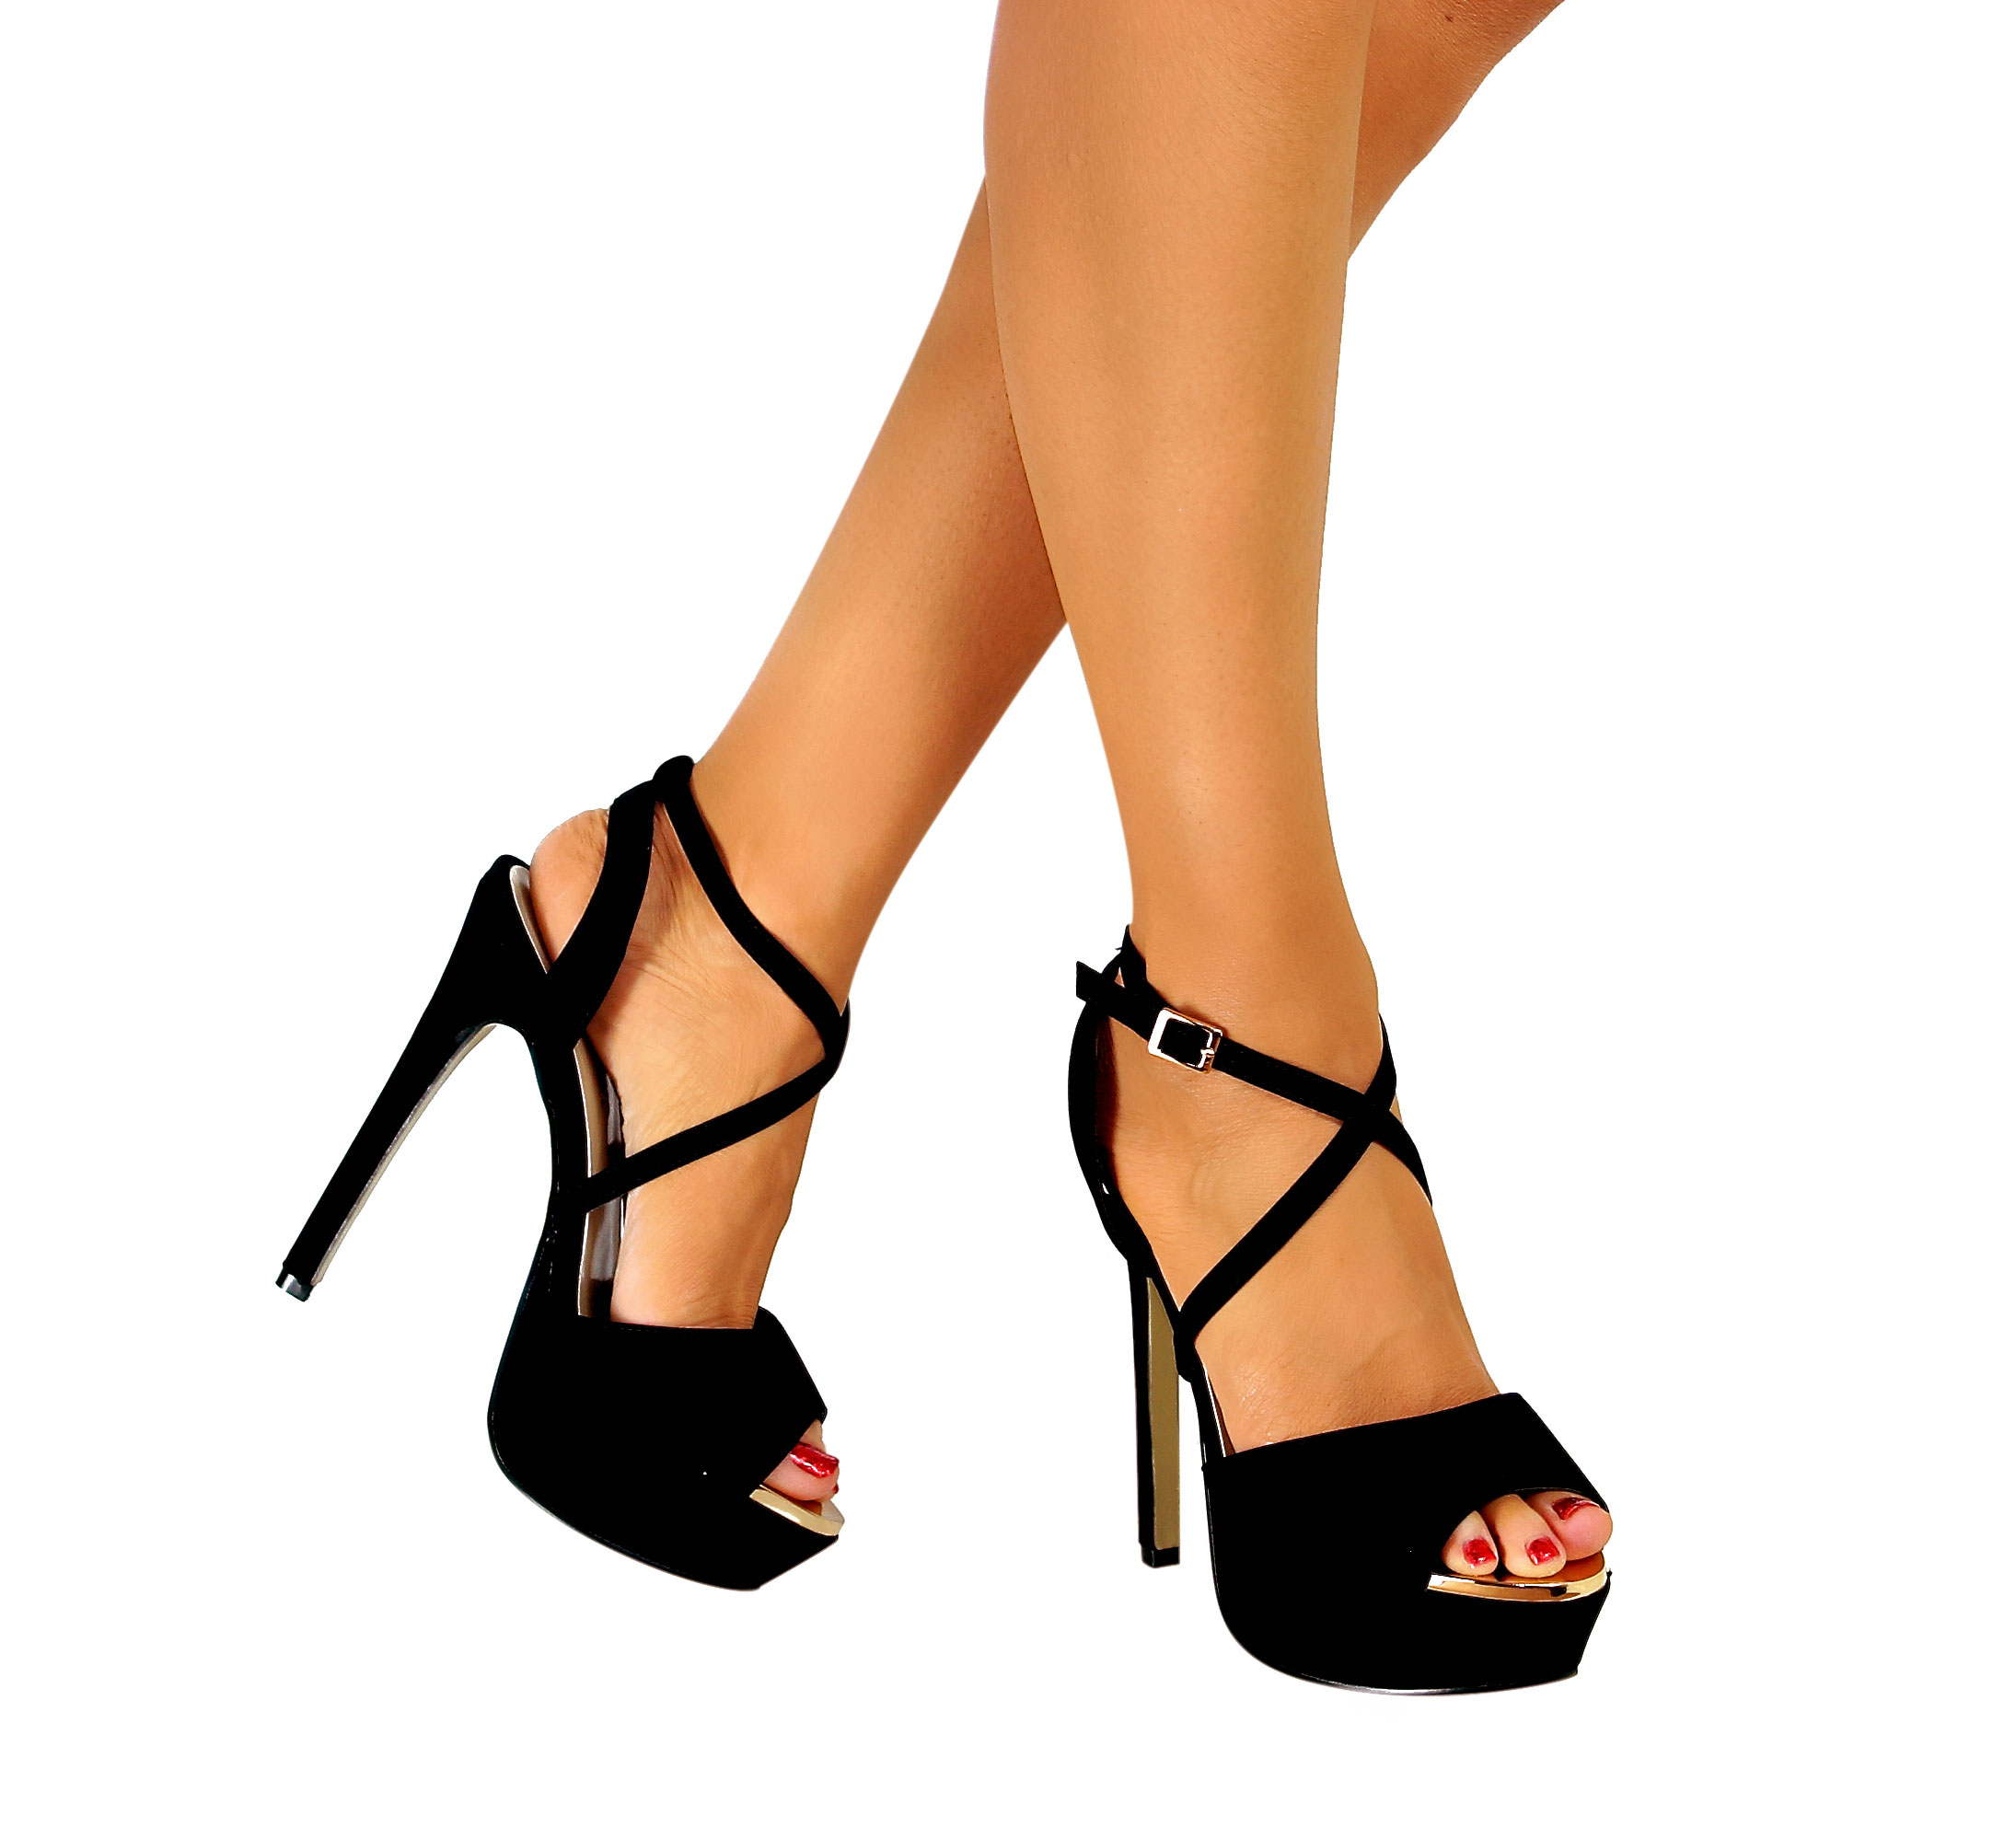 Shop online for women's designer shoes, boots, sandals, sneakers, heels and more, all at discount prices. Enjoy a large selection and free shipping every day!